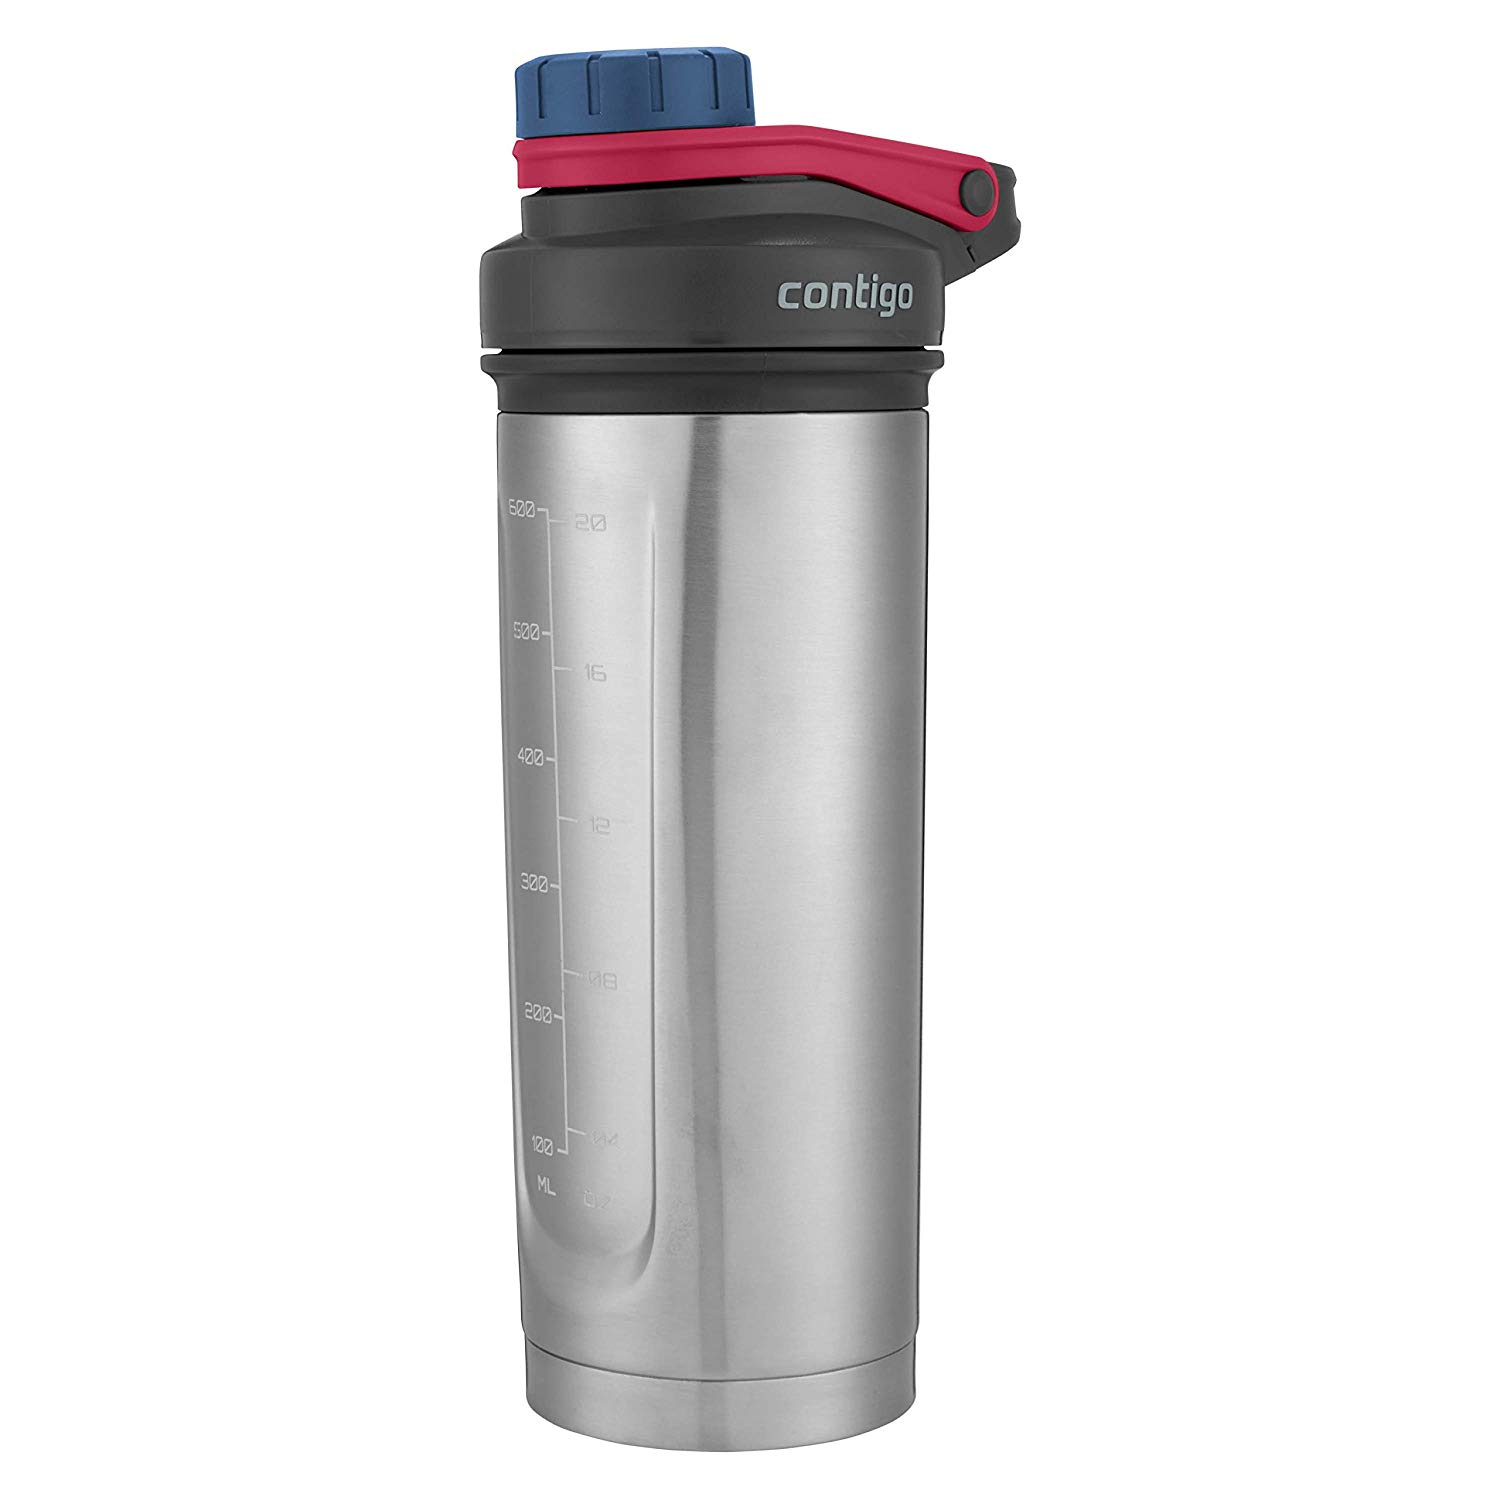 24oz Contigo Shake & Go Fit THERMALOCK Stainless Steel Shaker Bottle